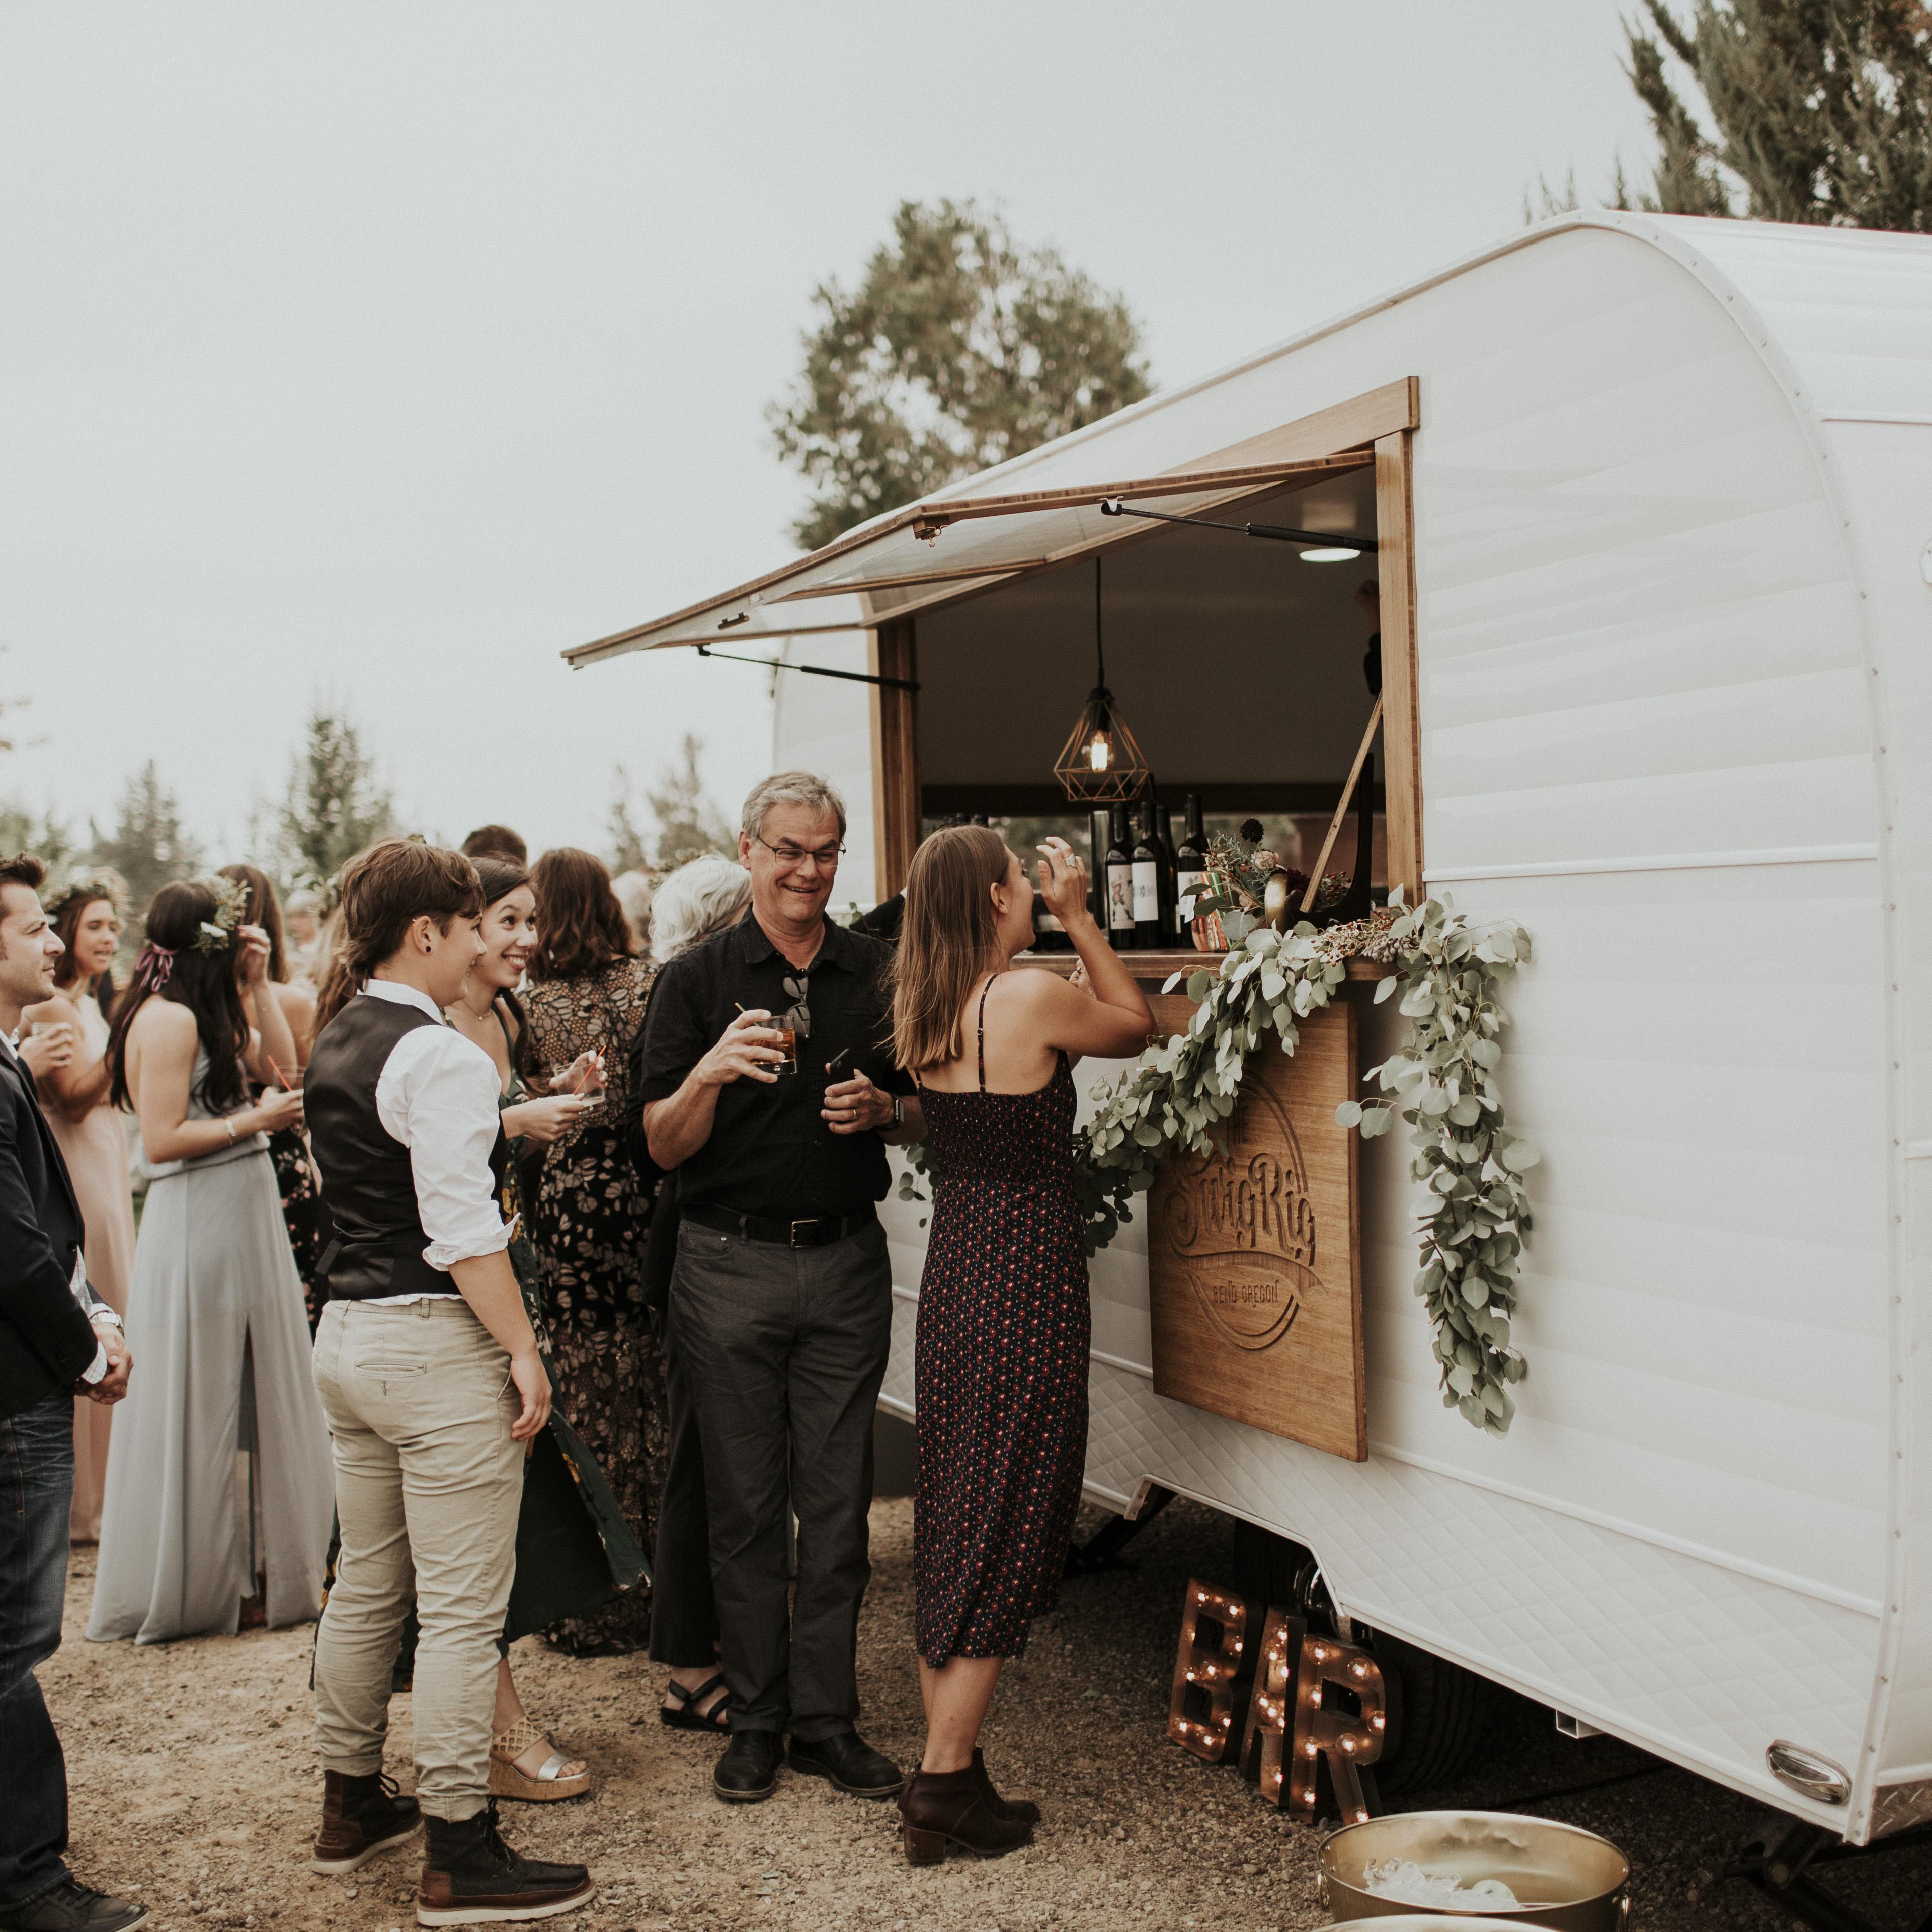 A Mobile Bar Will Make Your Reception Unforgettable